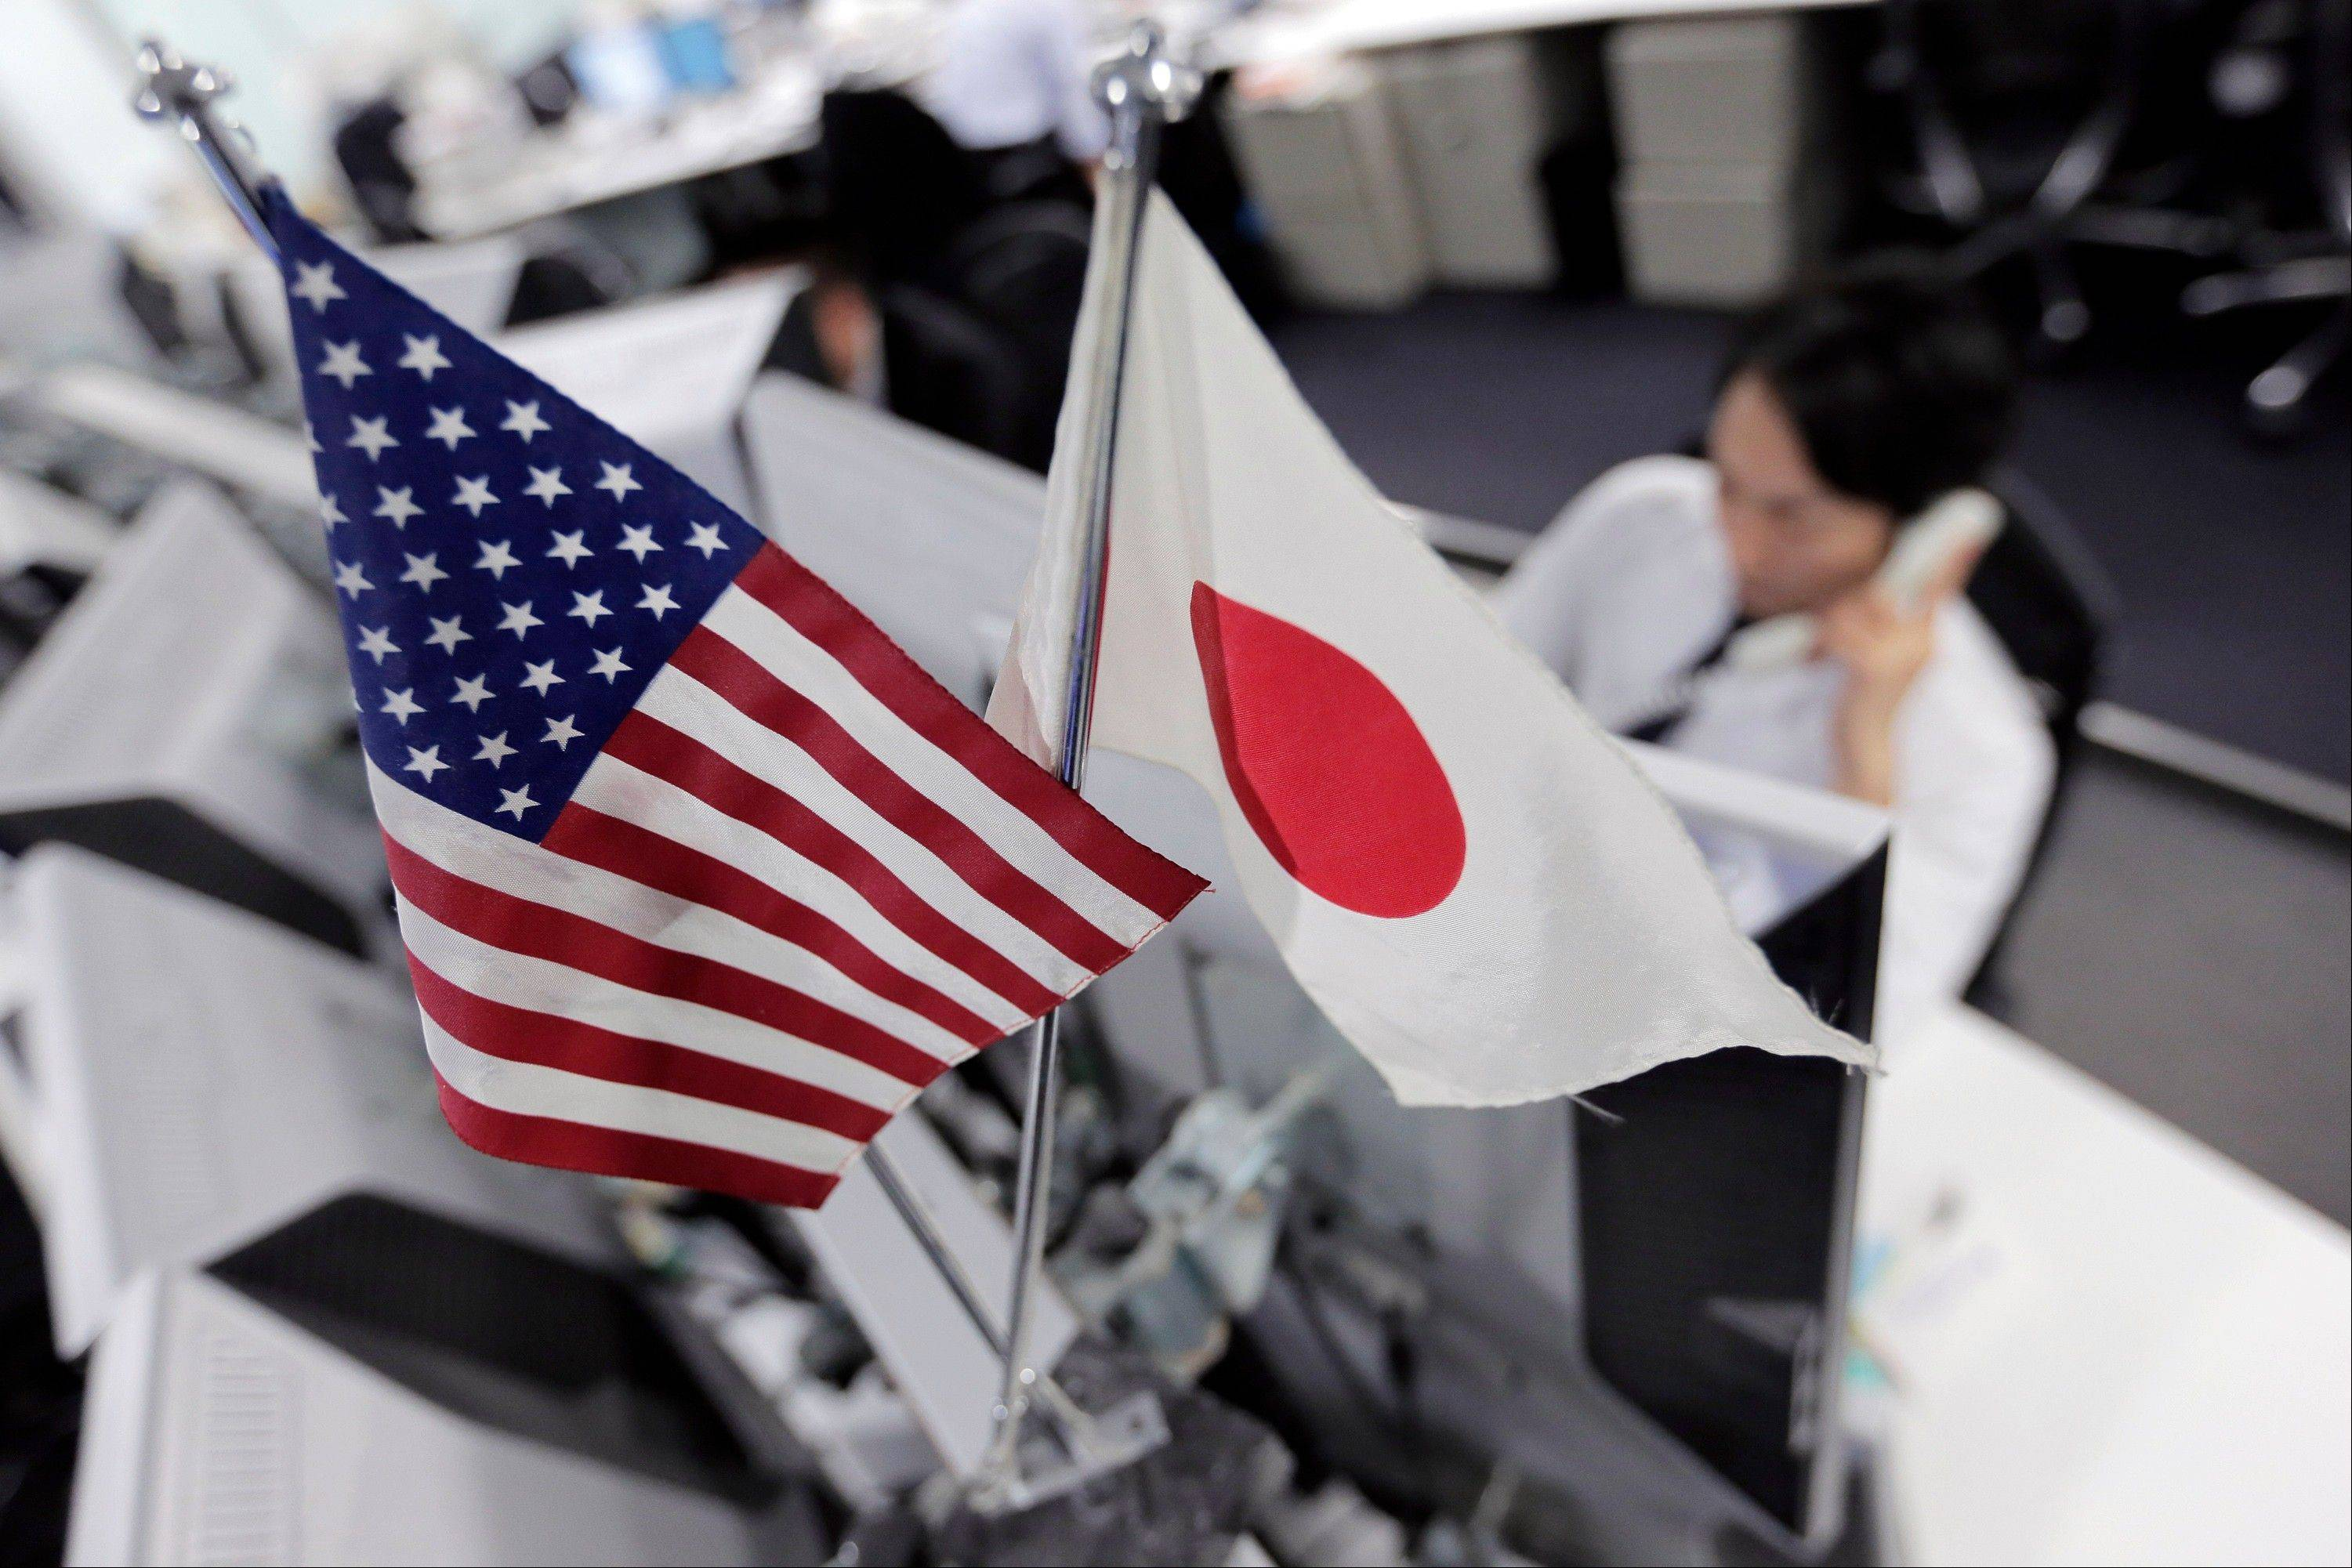 Money traders work under flags of the United States and Japan at a foreign exchange firm in Tokyo Friday.